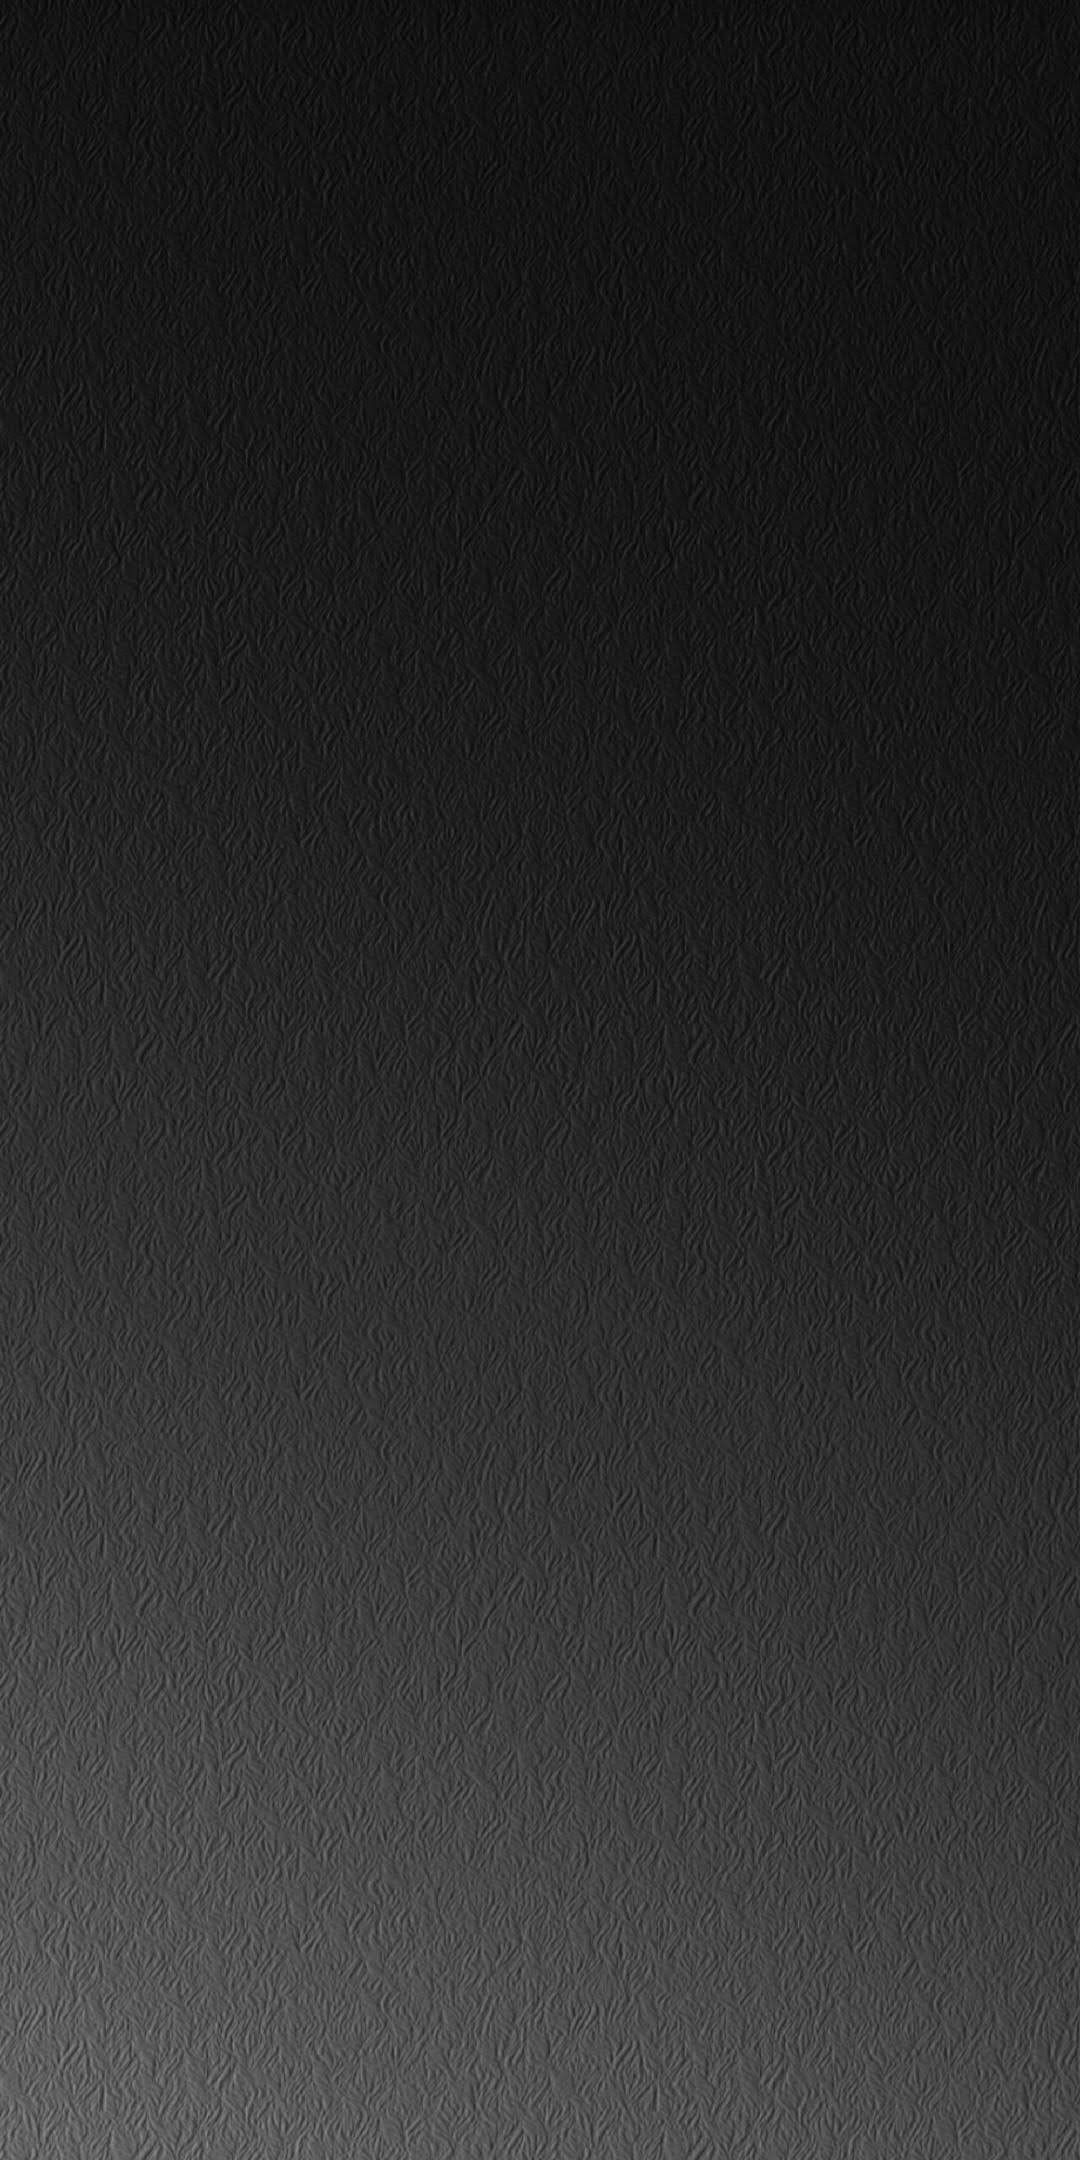 Pin By Iyan Sofyan On Abstract Amoled Liquid Gradient Abstract Wallpaper Backgrounds Grey Wallpaper Iphone Black Phone Wallpaper